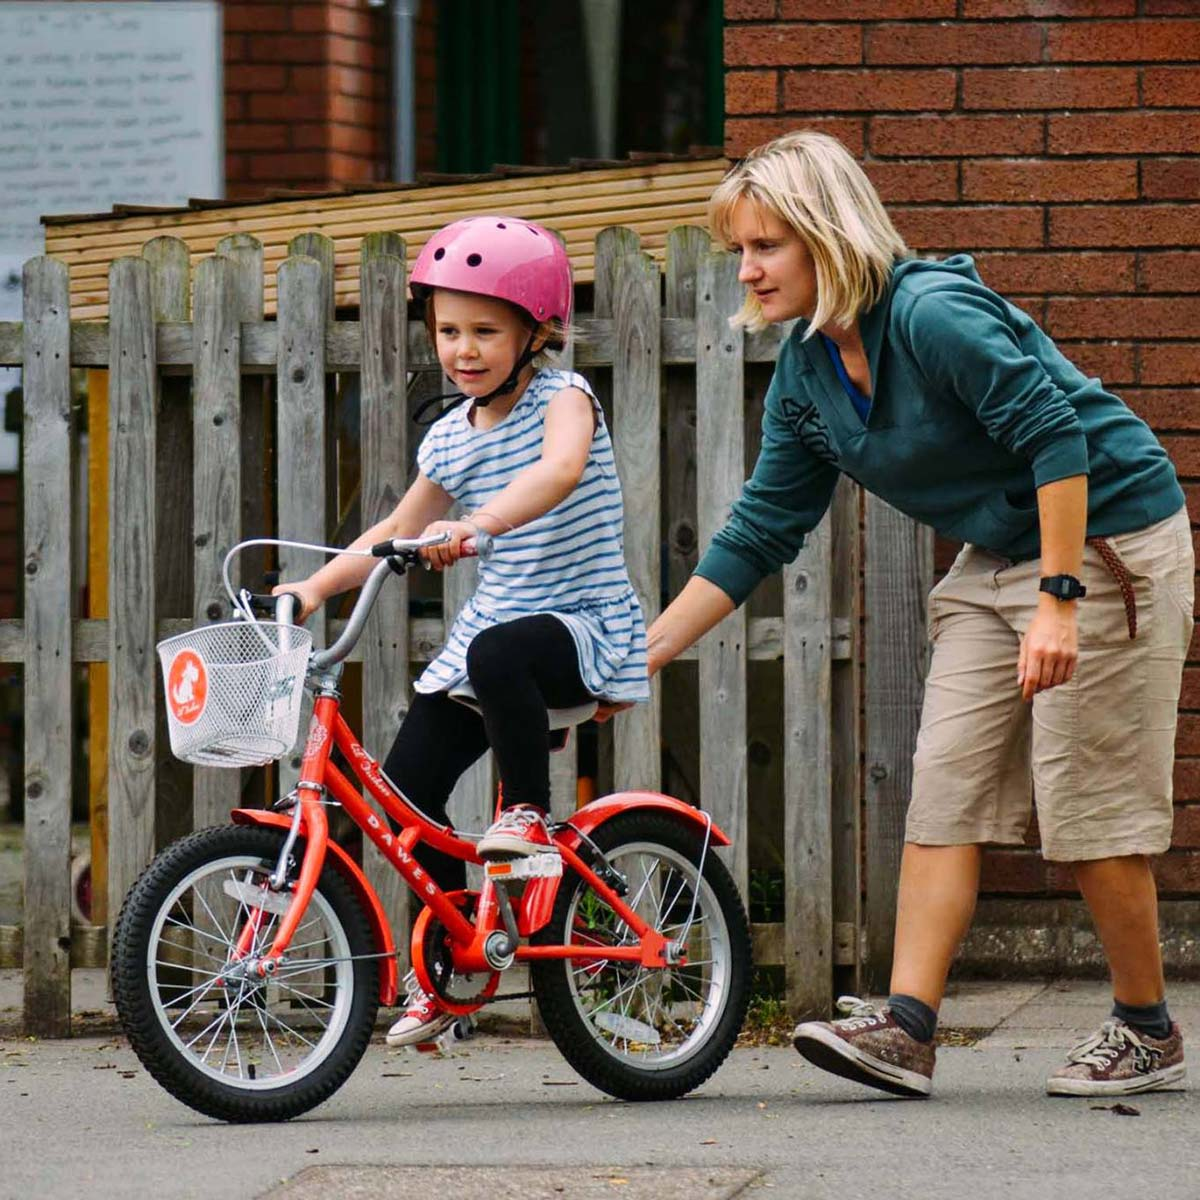 open trail hannah escott teaching a child to ride without stabilisers - 1:1 bike lessons